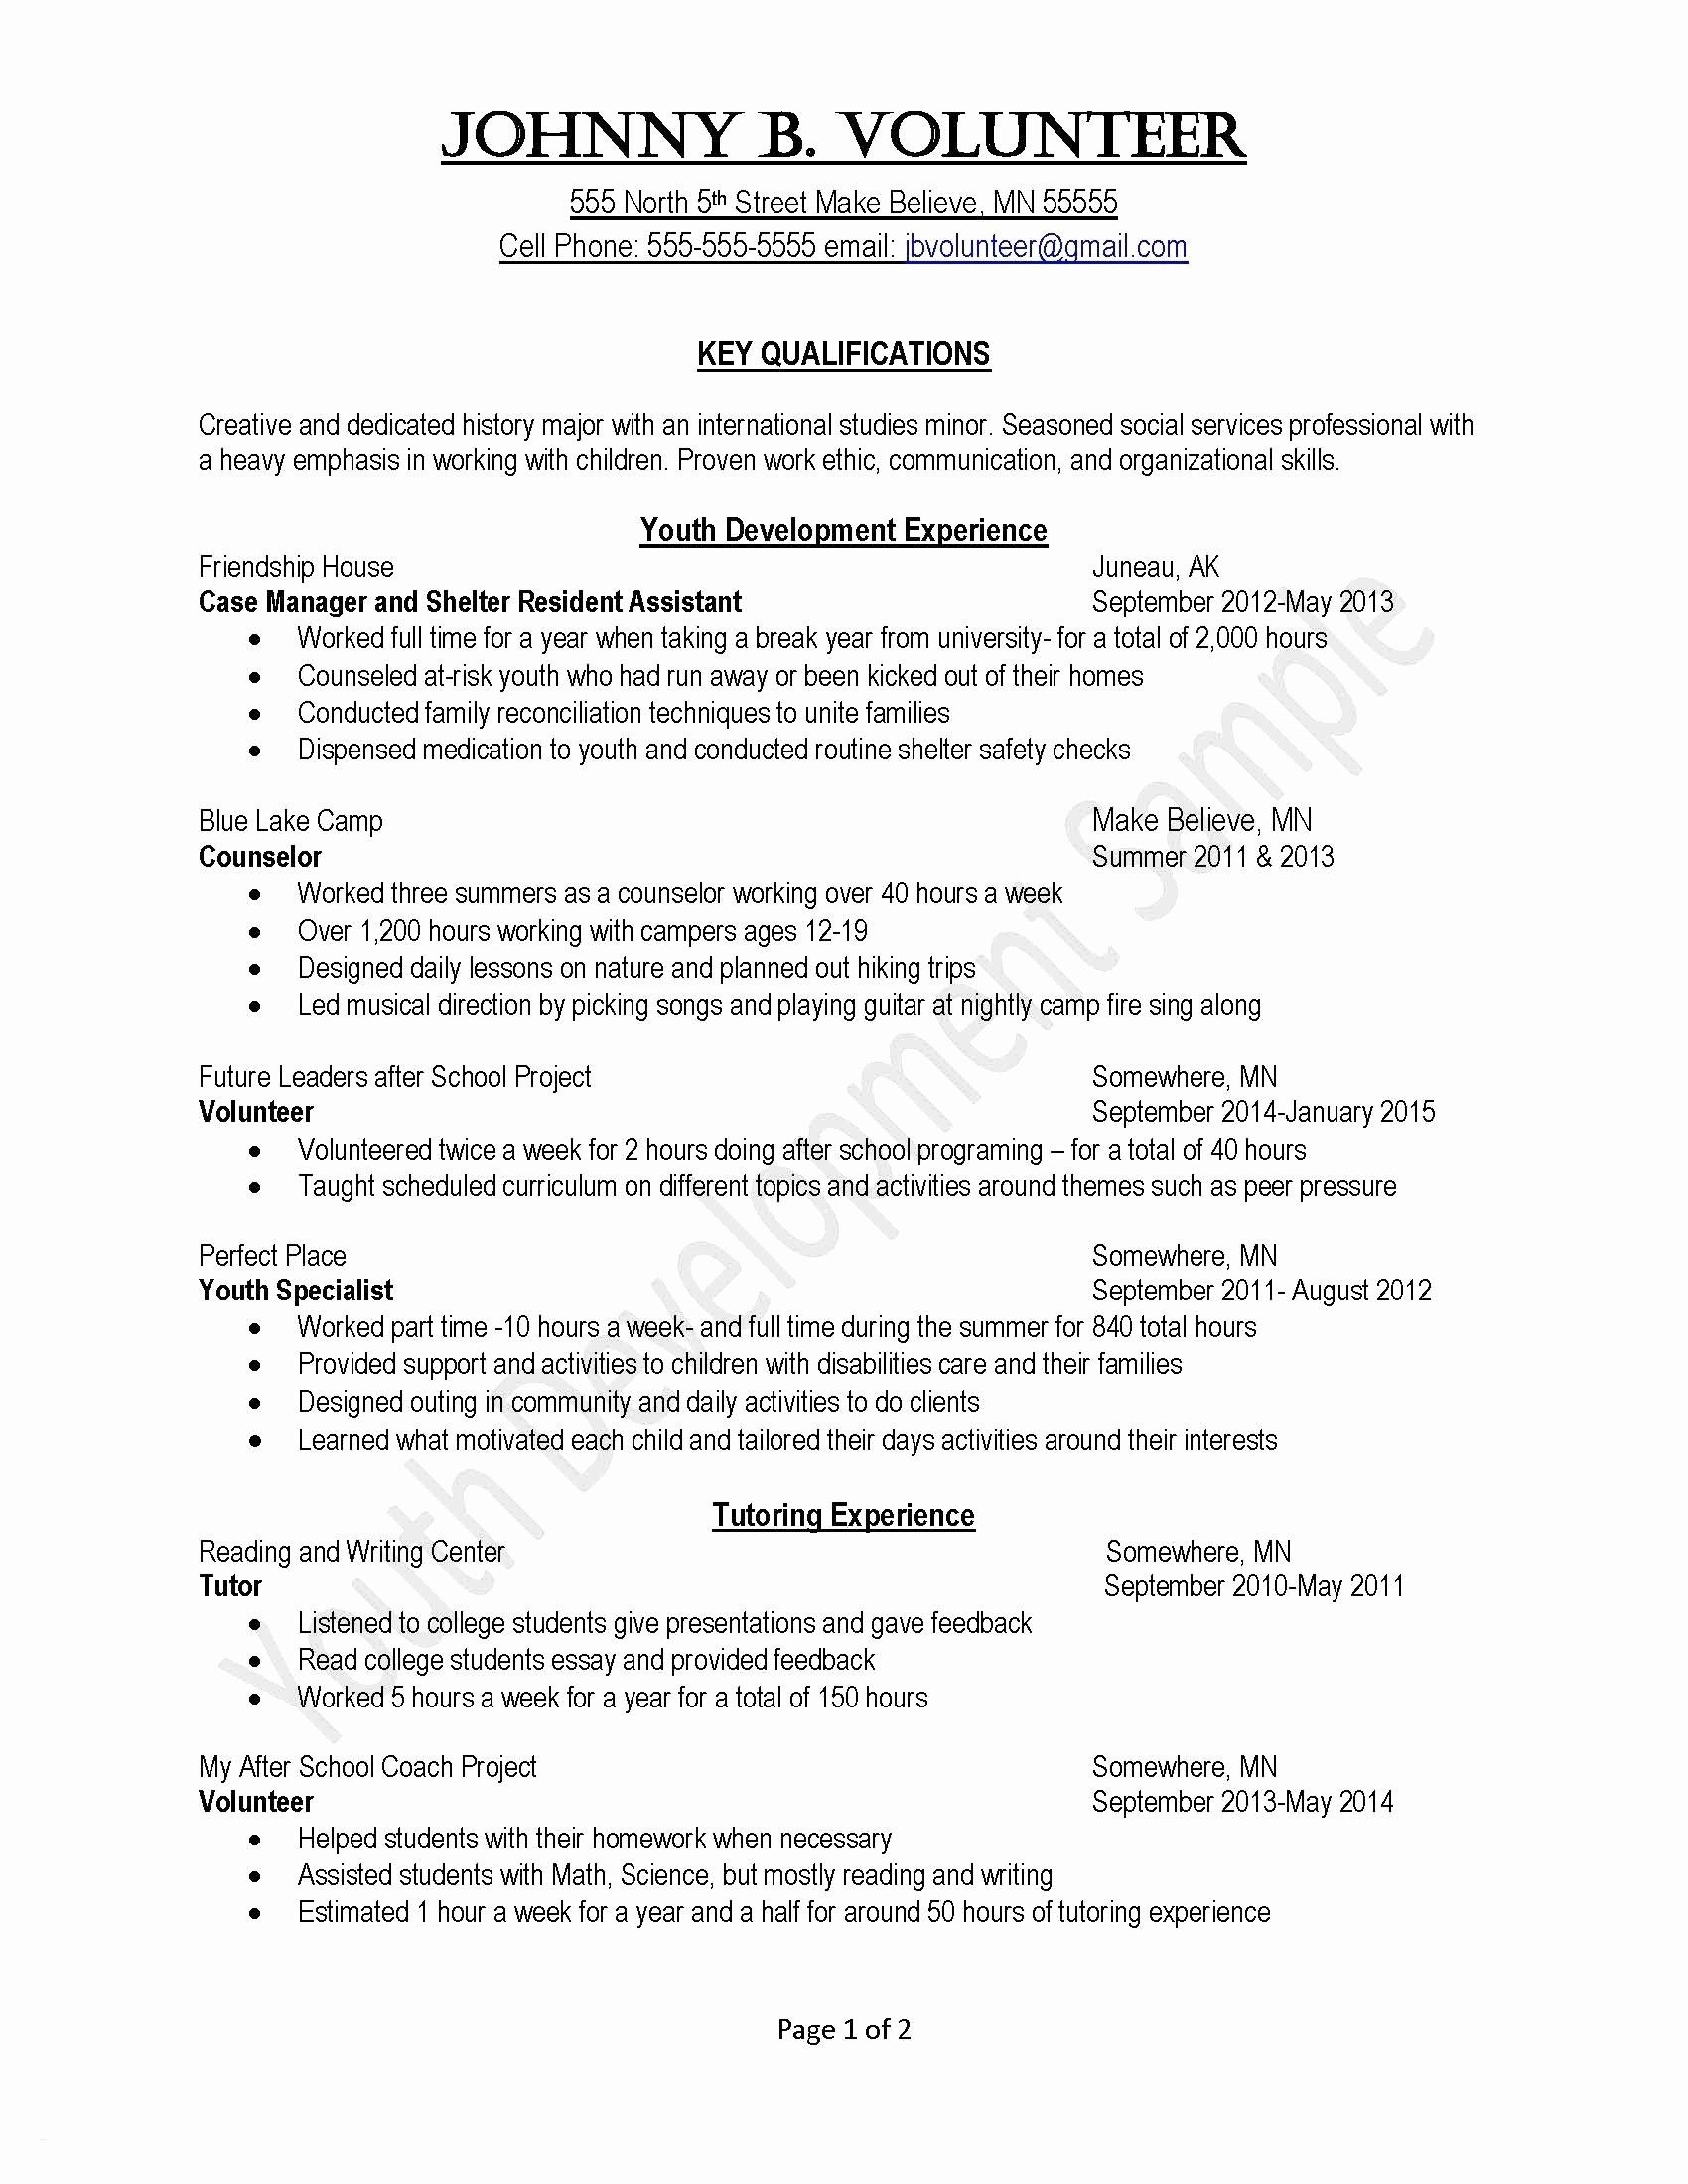 Cv Template For Over 40 Resume Examples Business Proposal Template Cover Letter For Resume Resume Skills